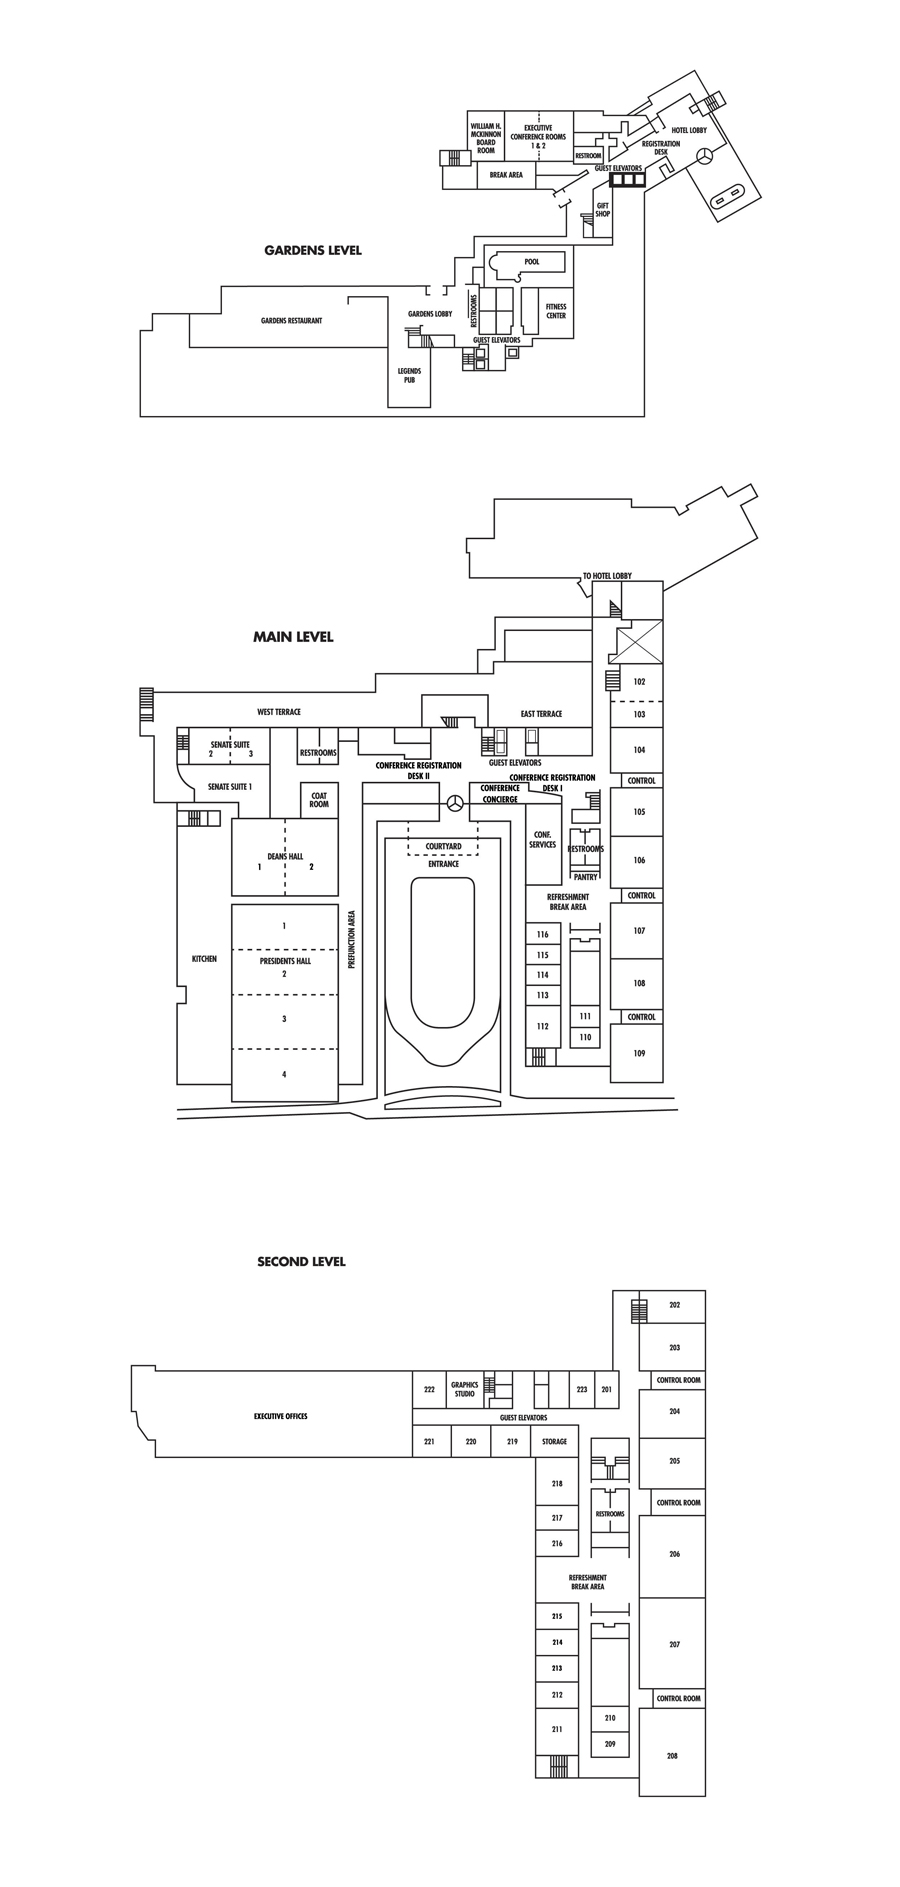 Floor Plans & Meeting Facilities at the Penn Stater Conference ...